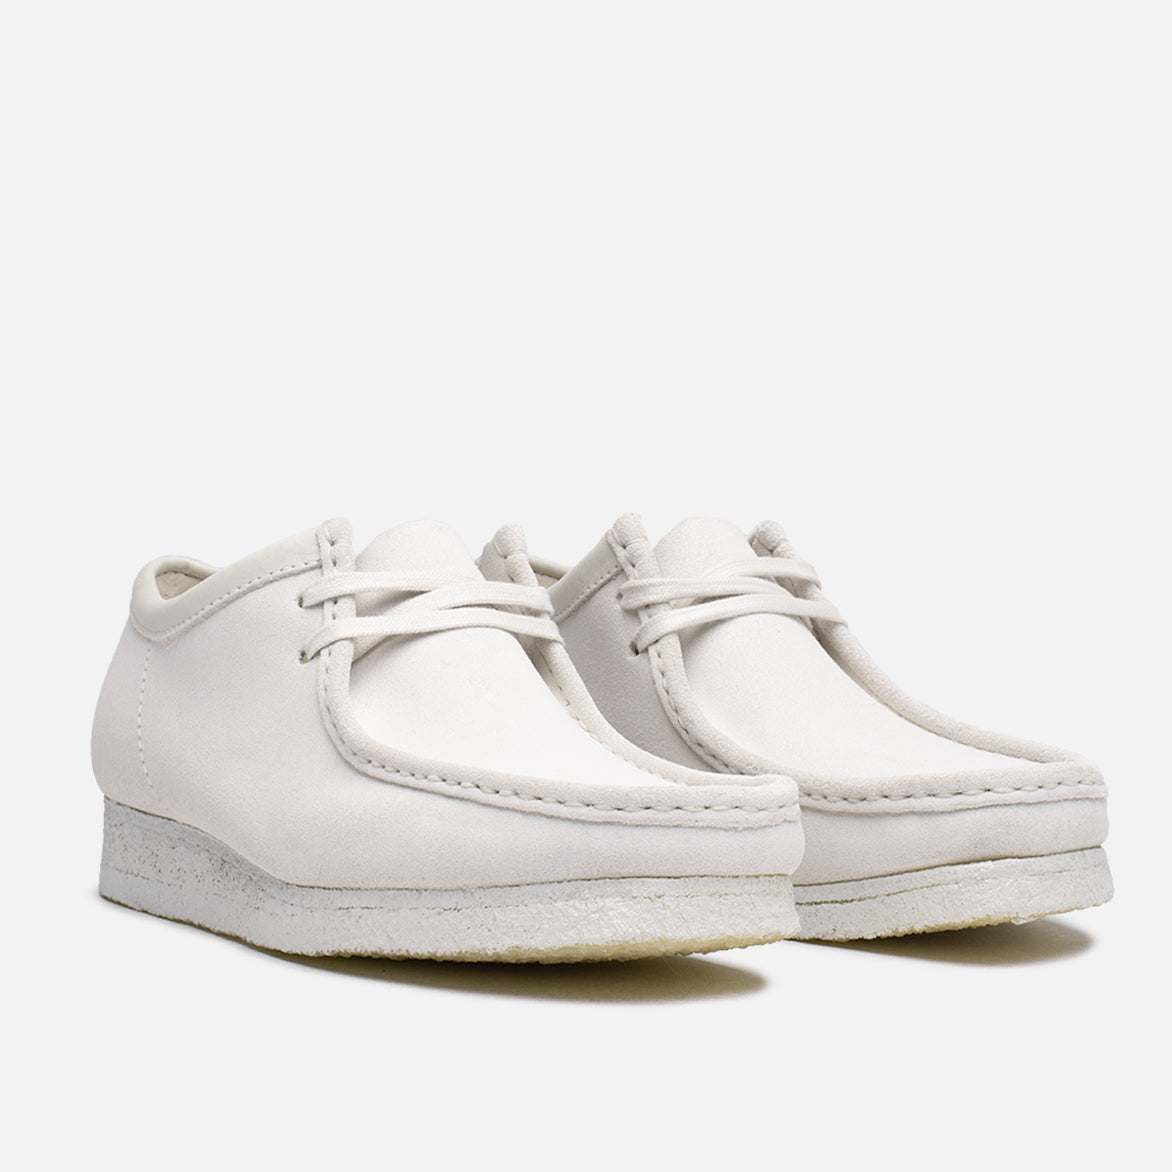 WALLABEE - WHITE SUEDE